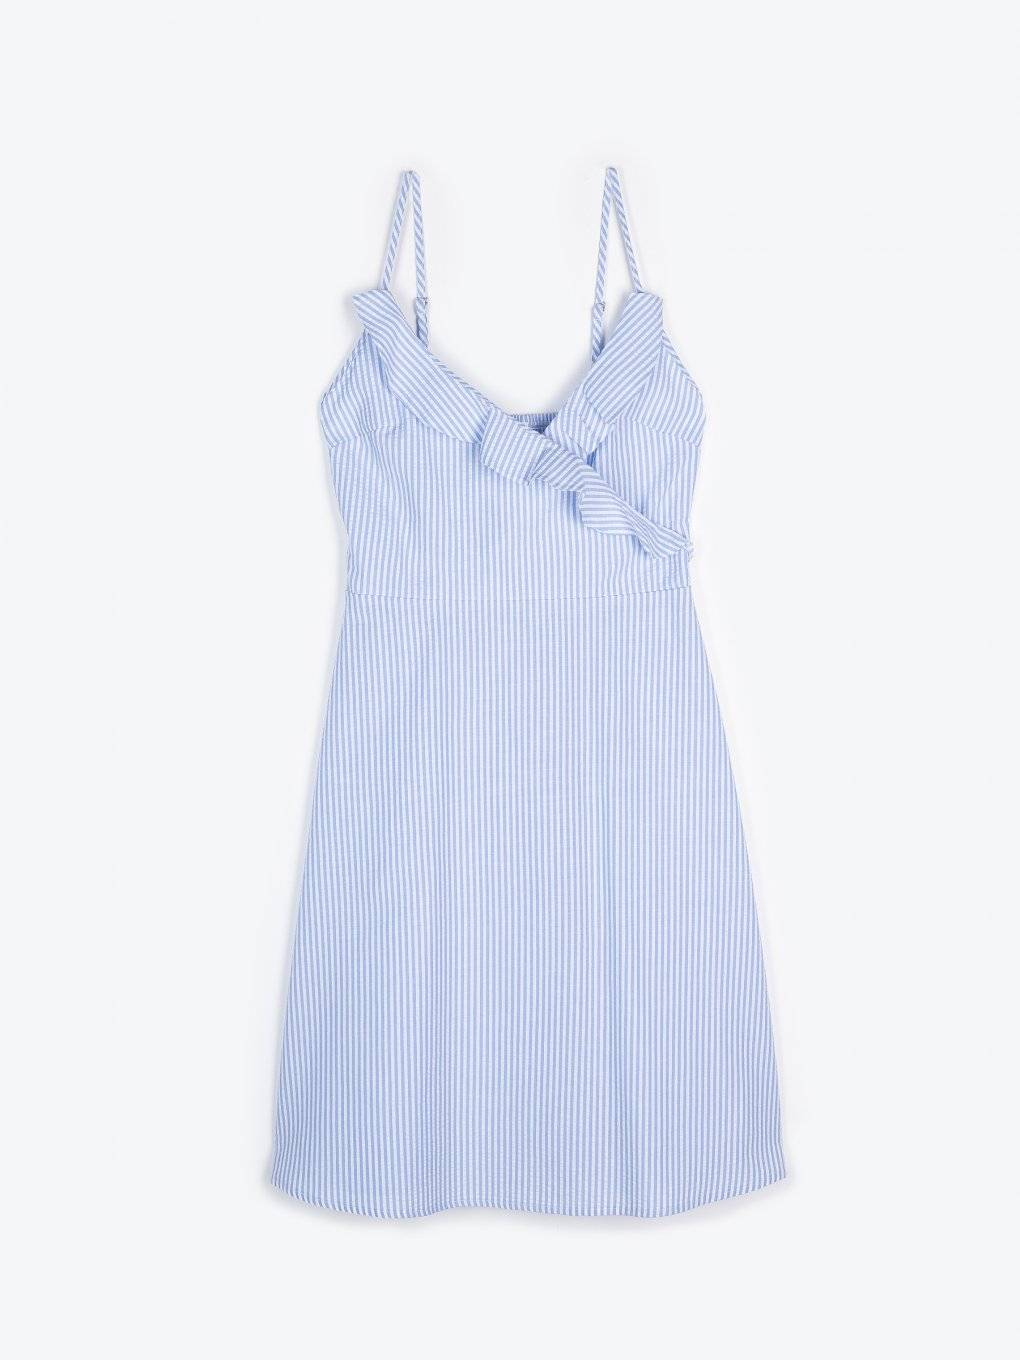 Striped dress with ruffles